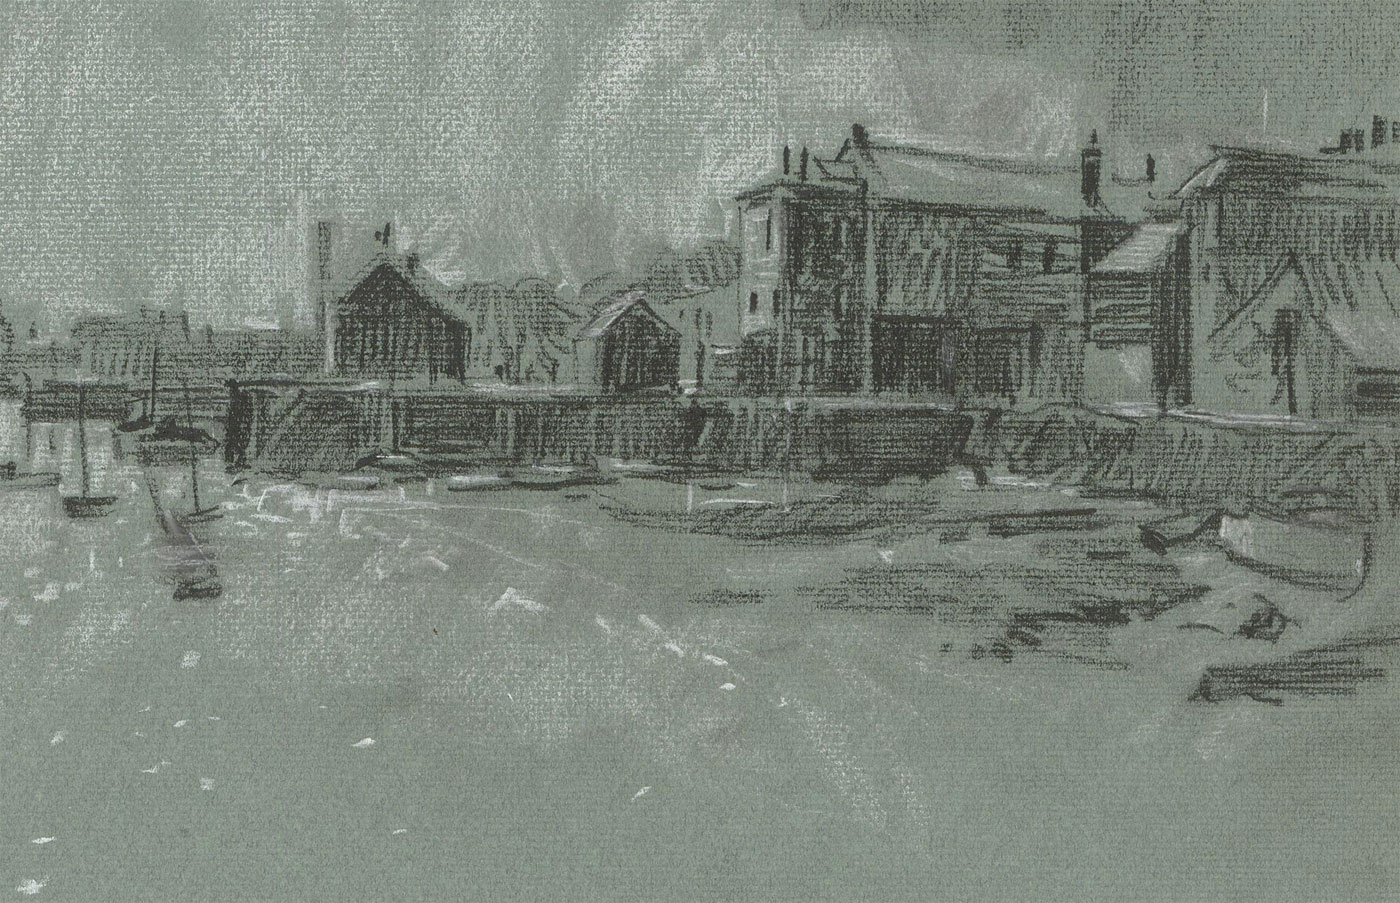 Malcolm Rogers - 1971 Charcoal Drawing, Falmouth